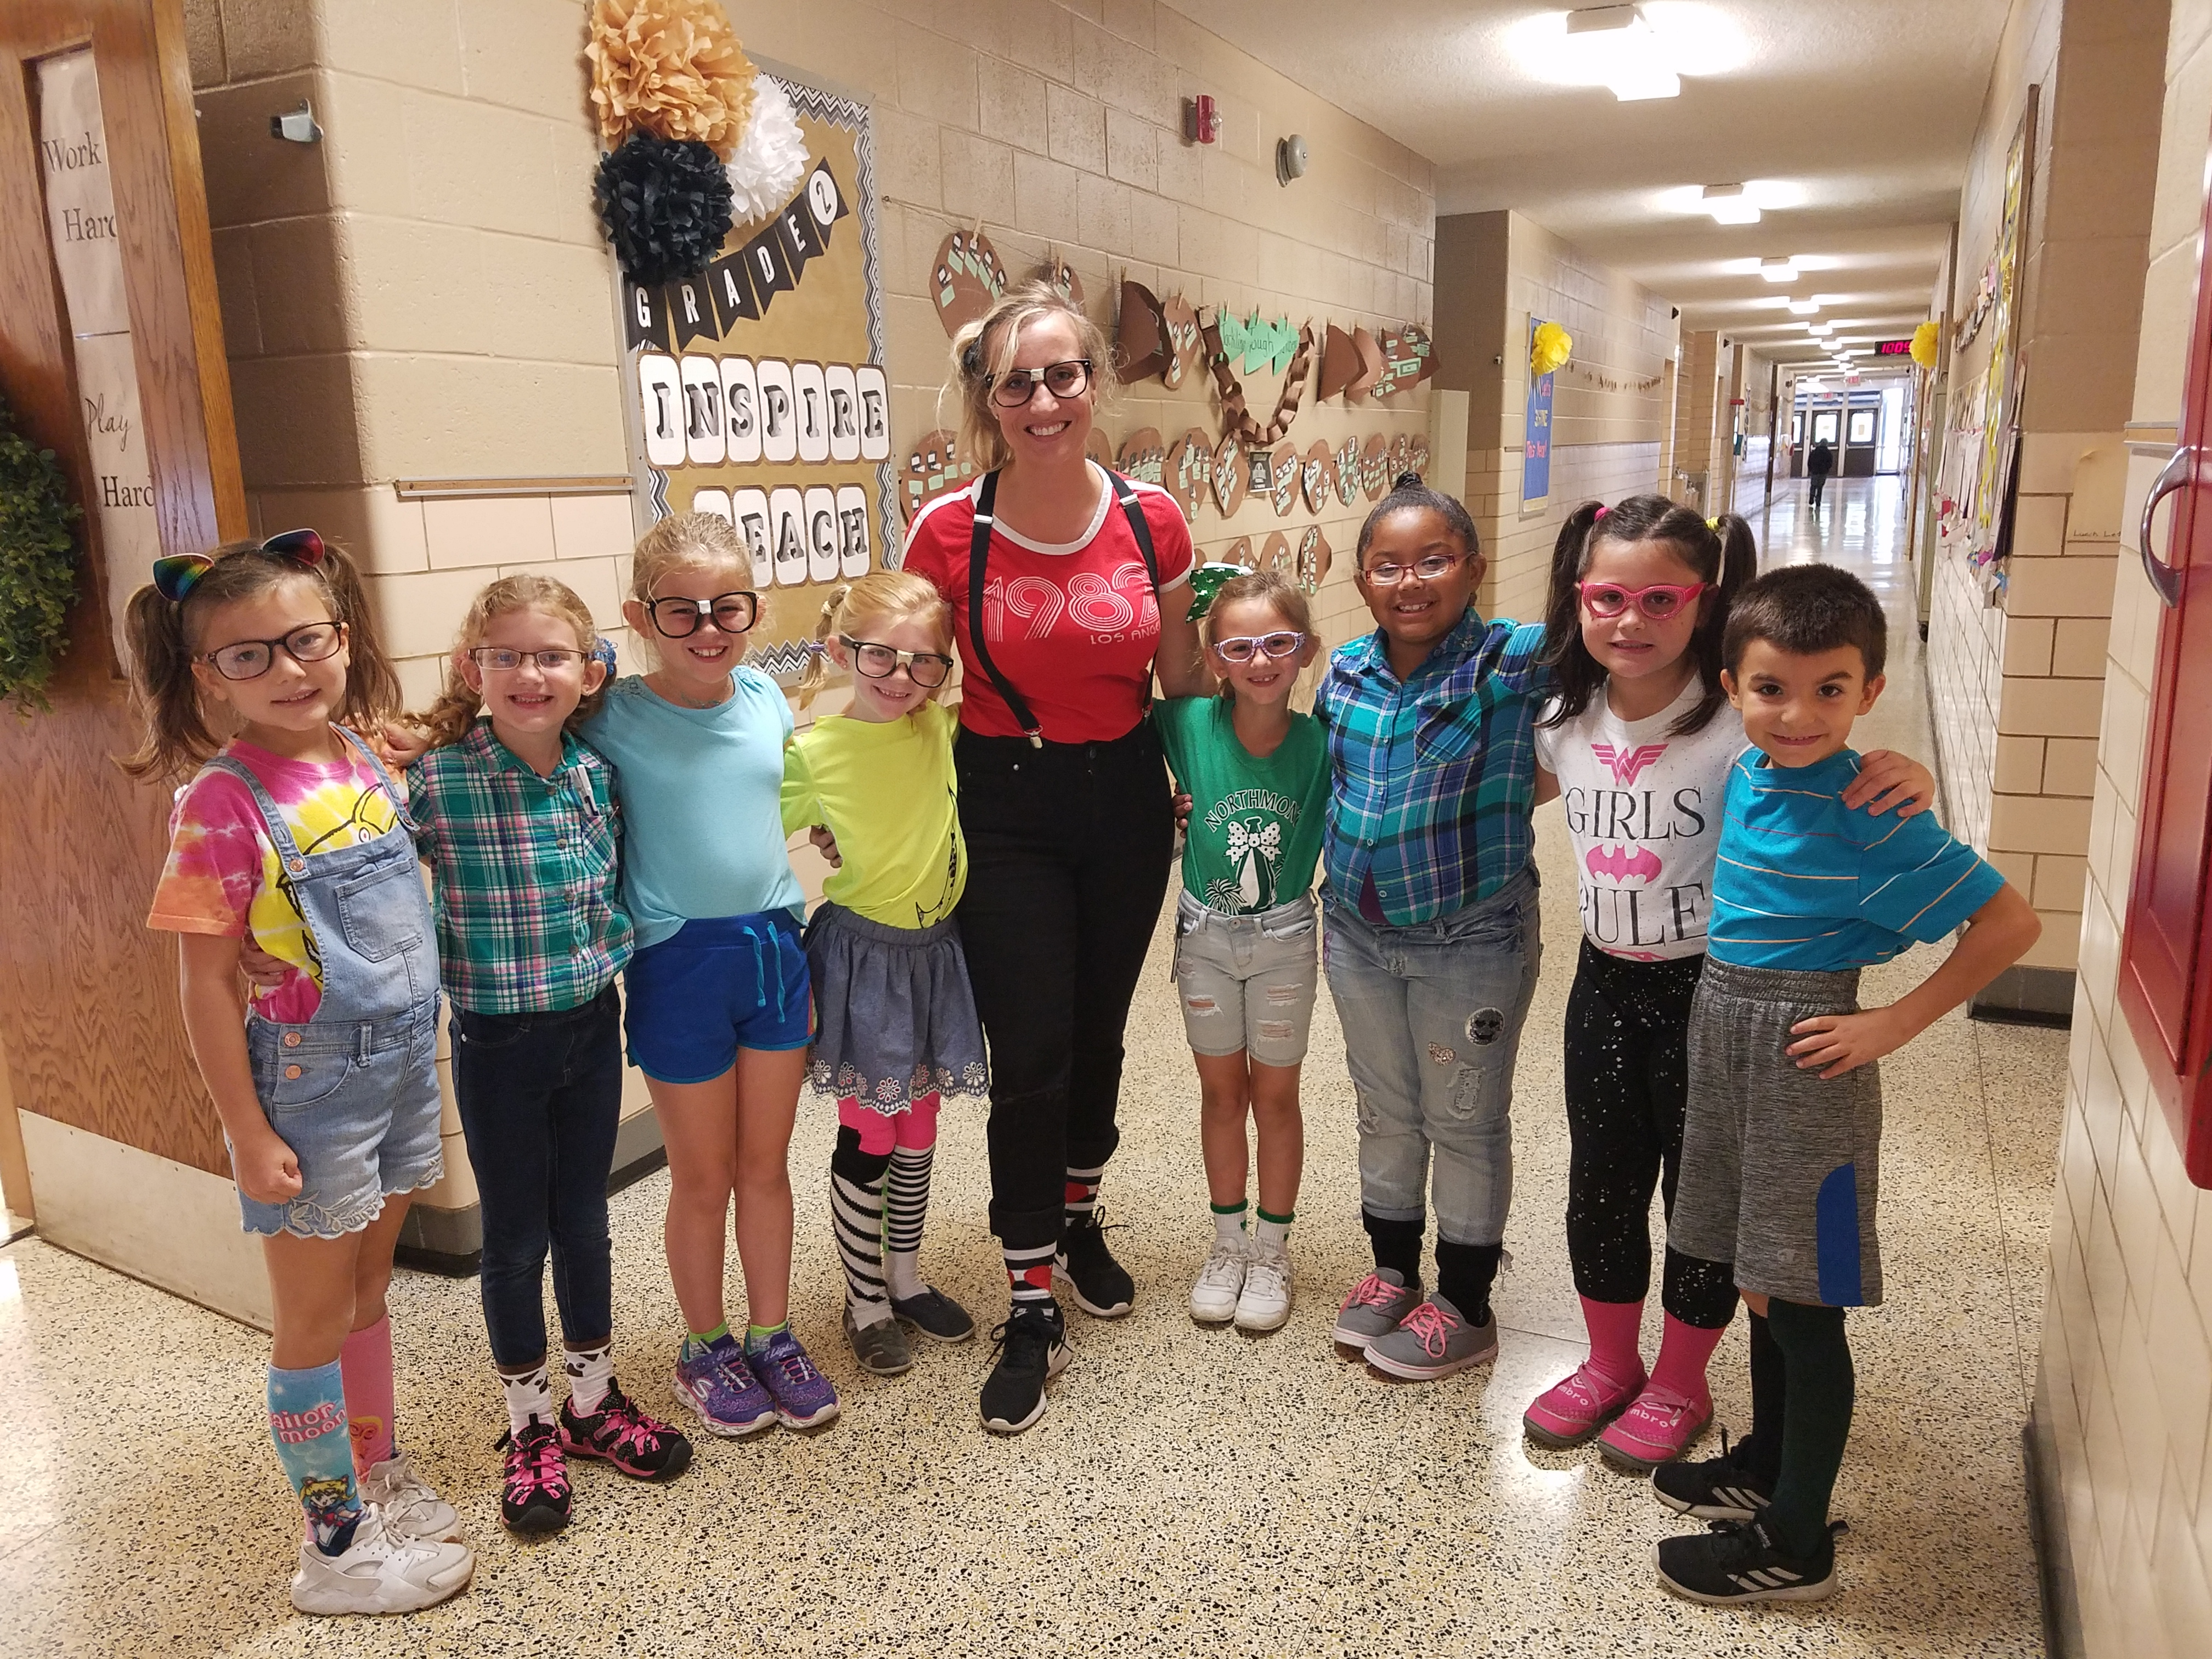 Mrs. Bartolotta and some second graders.